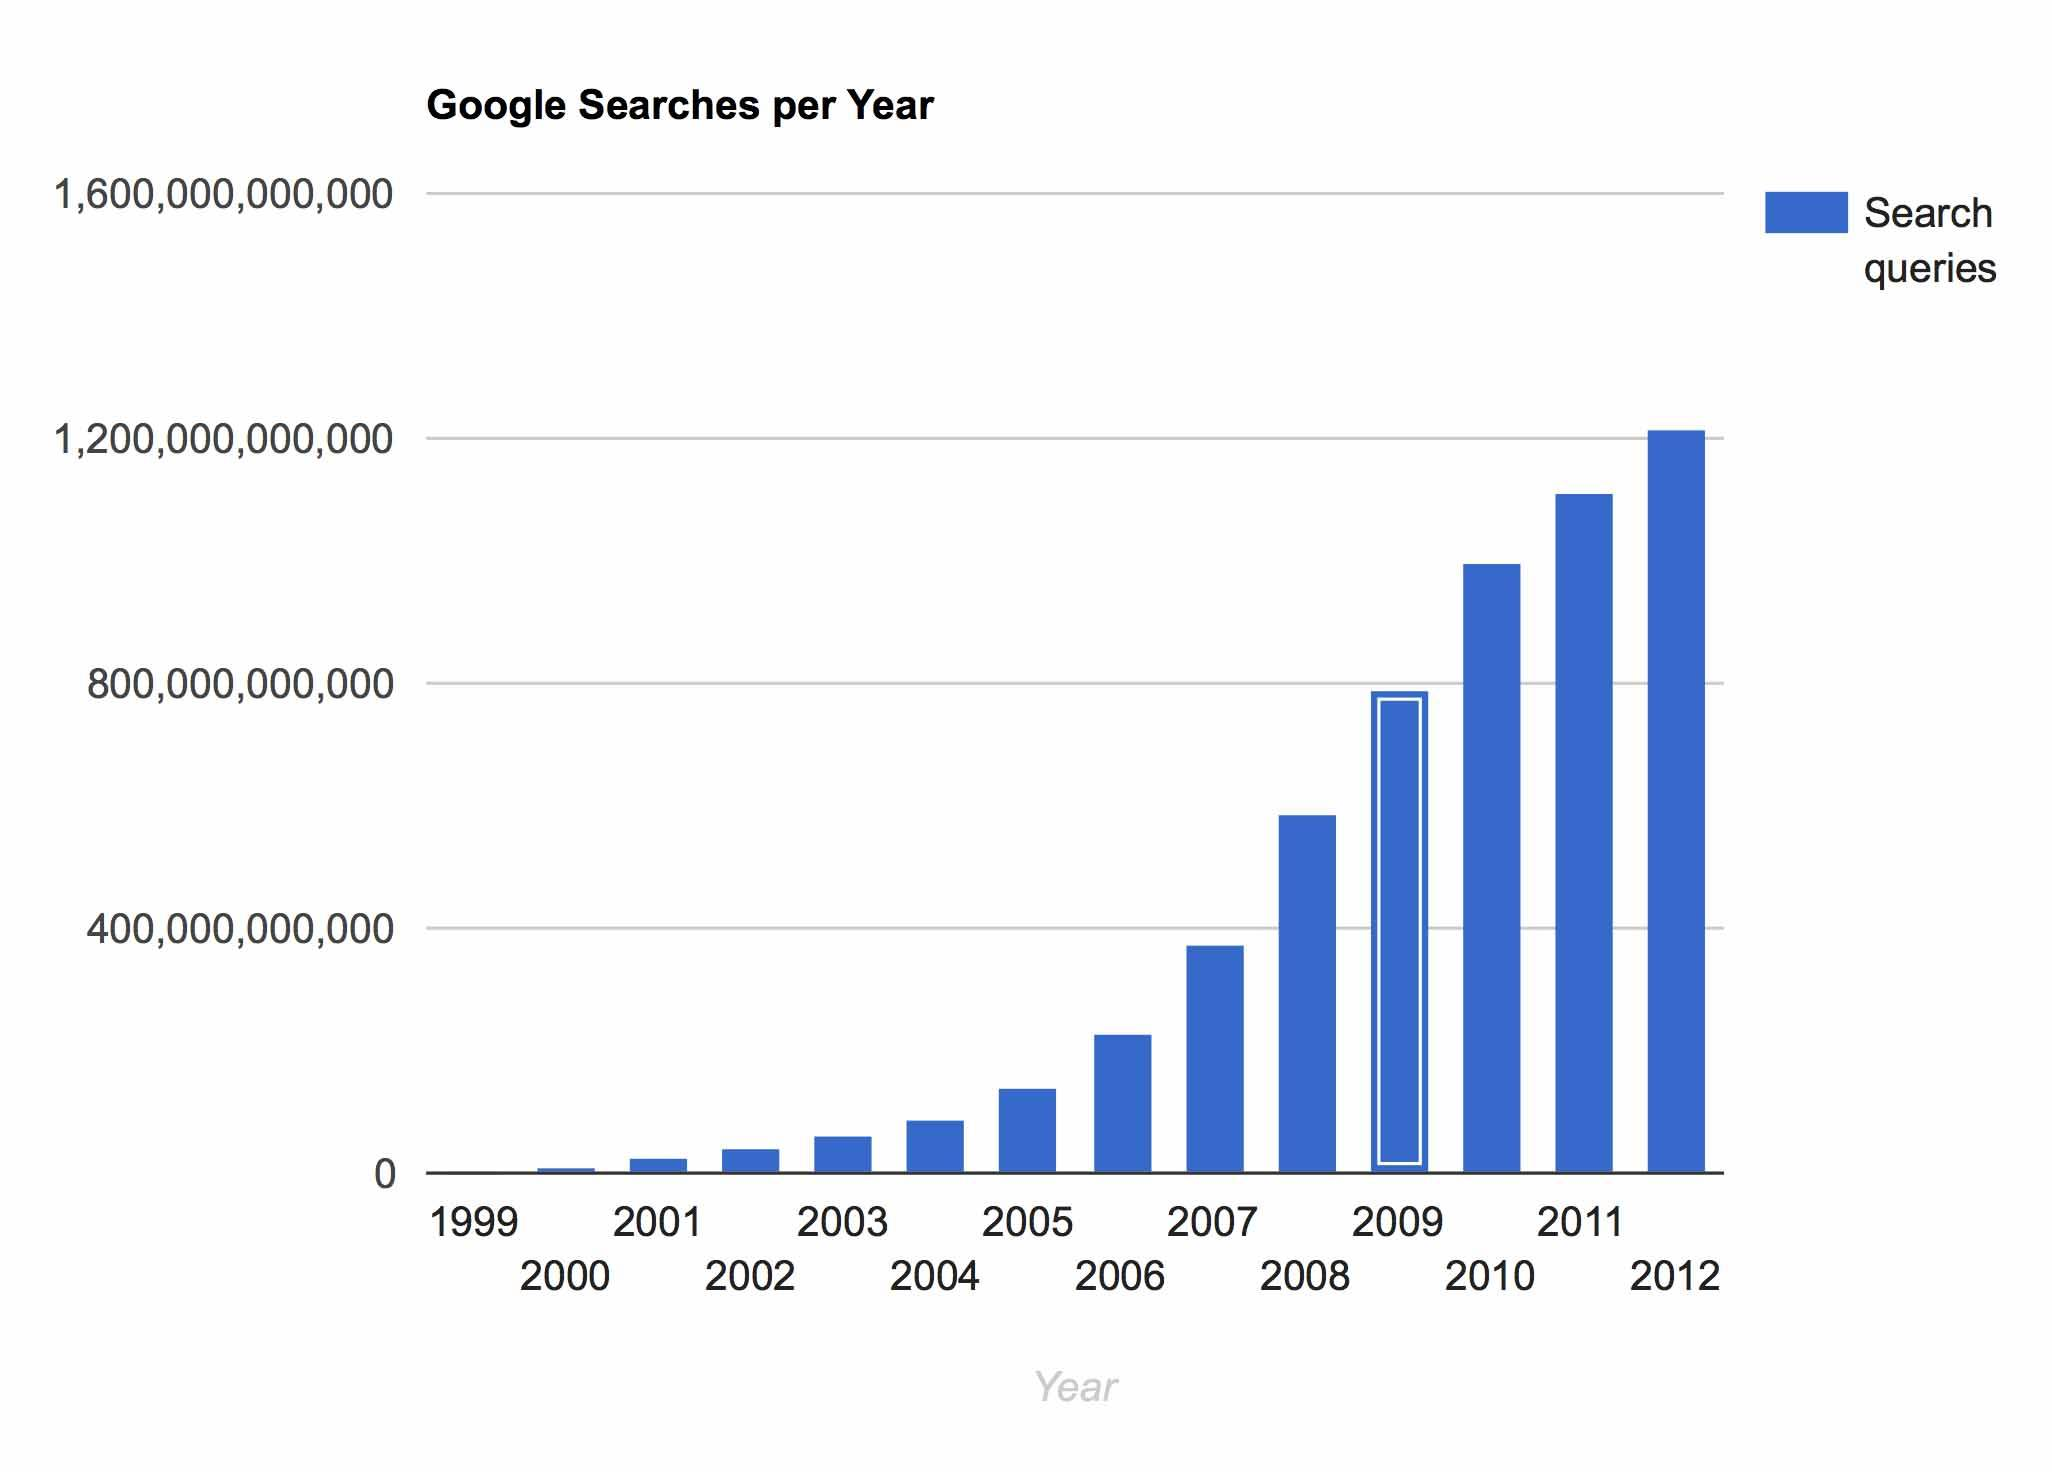 image displaying google searches per year